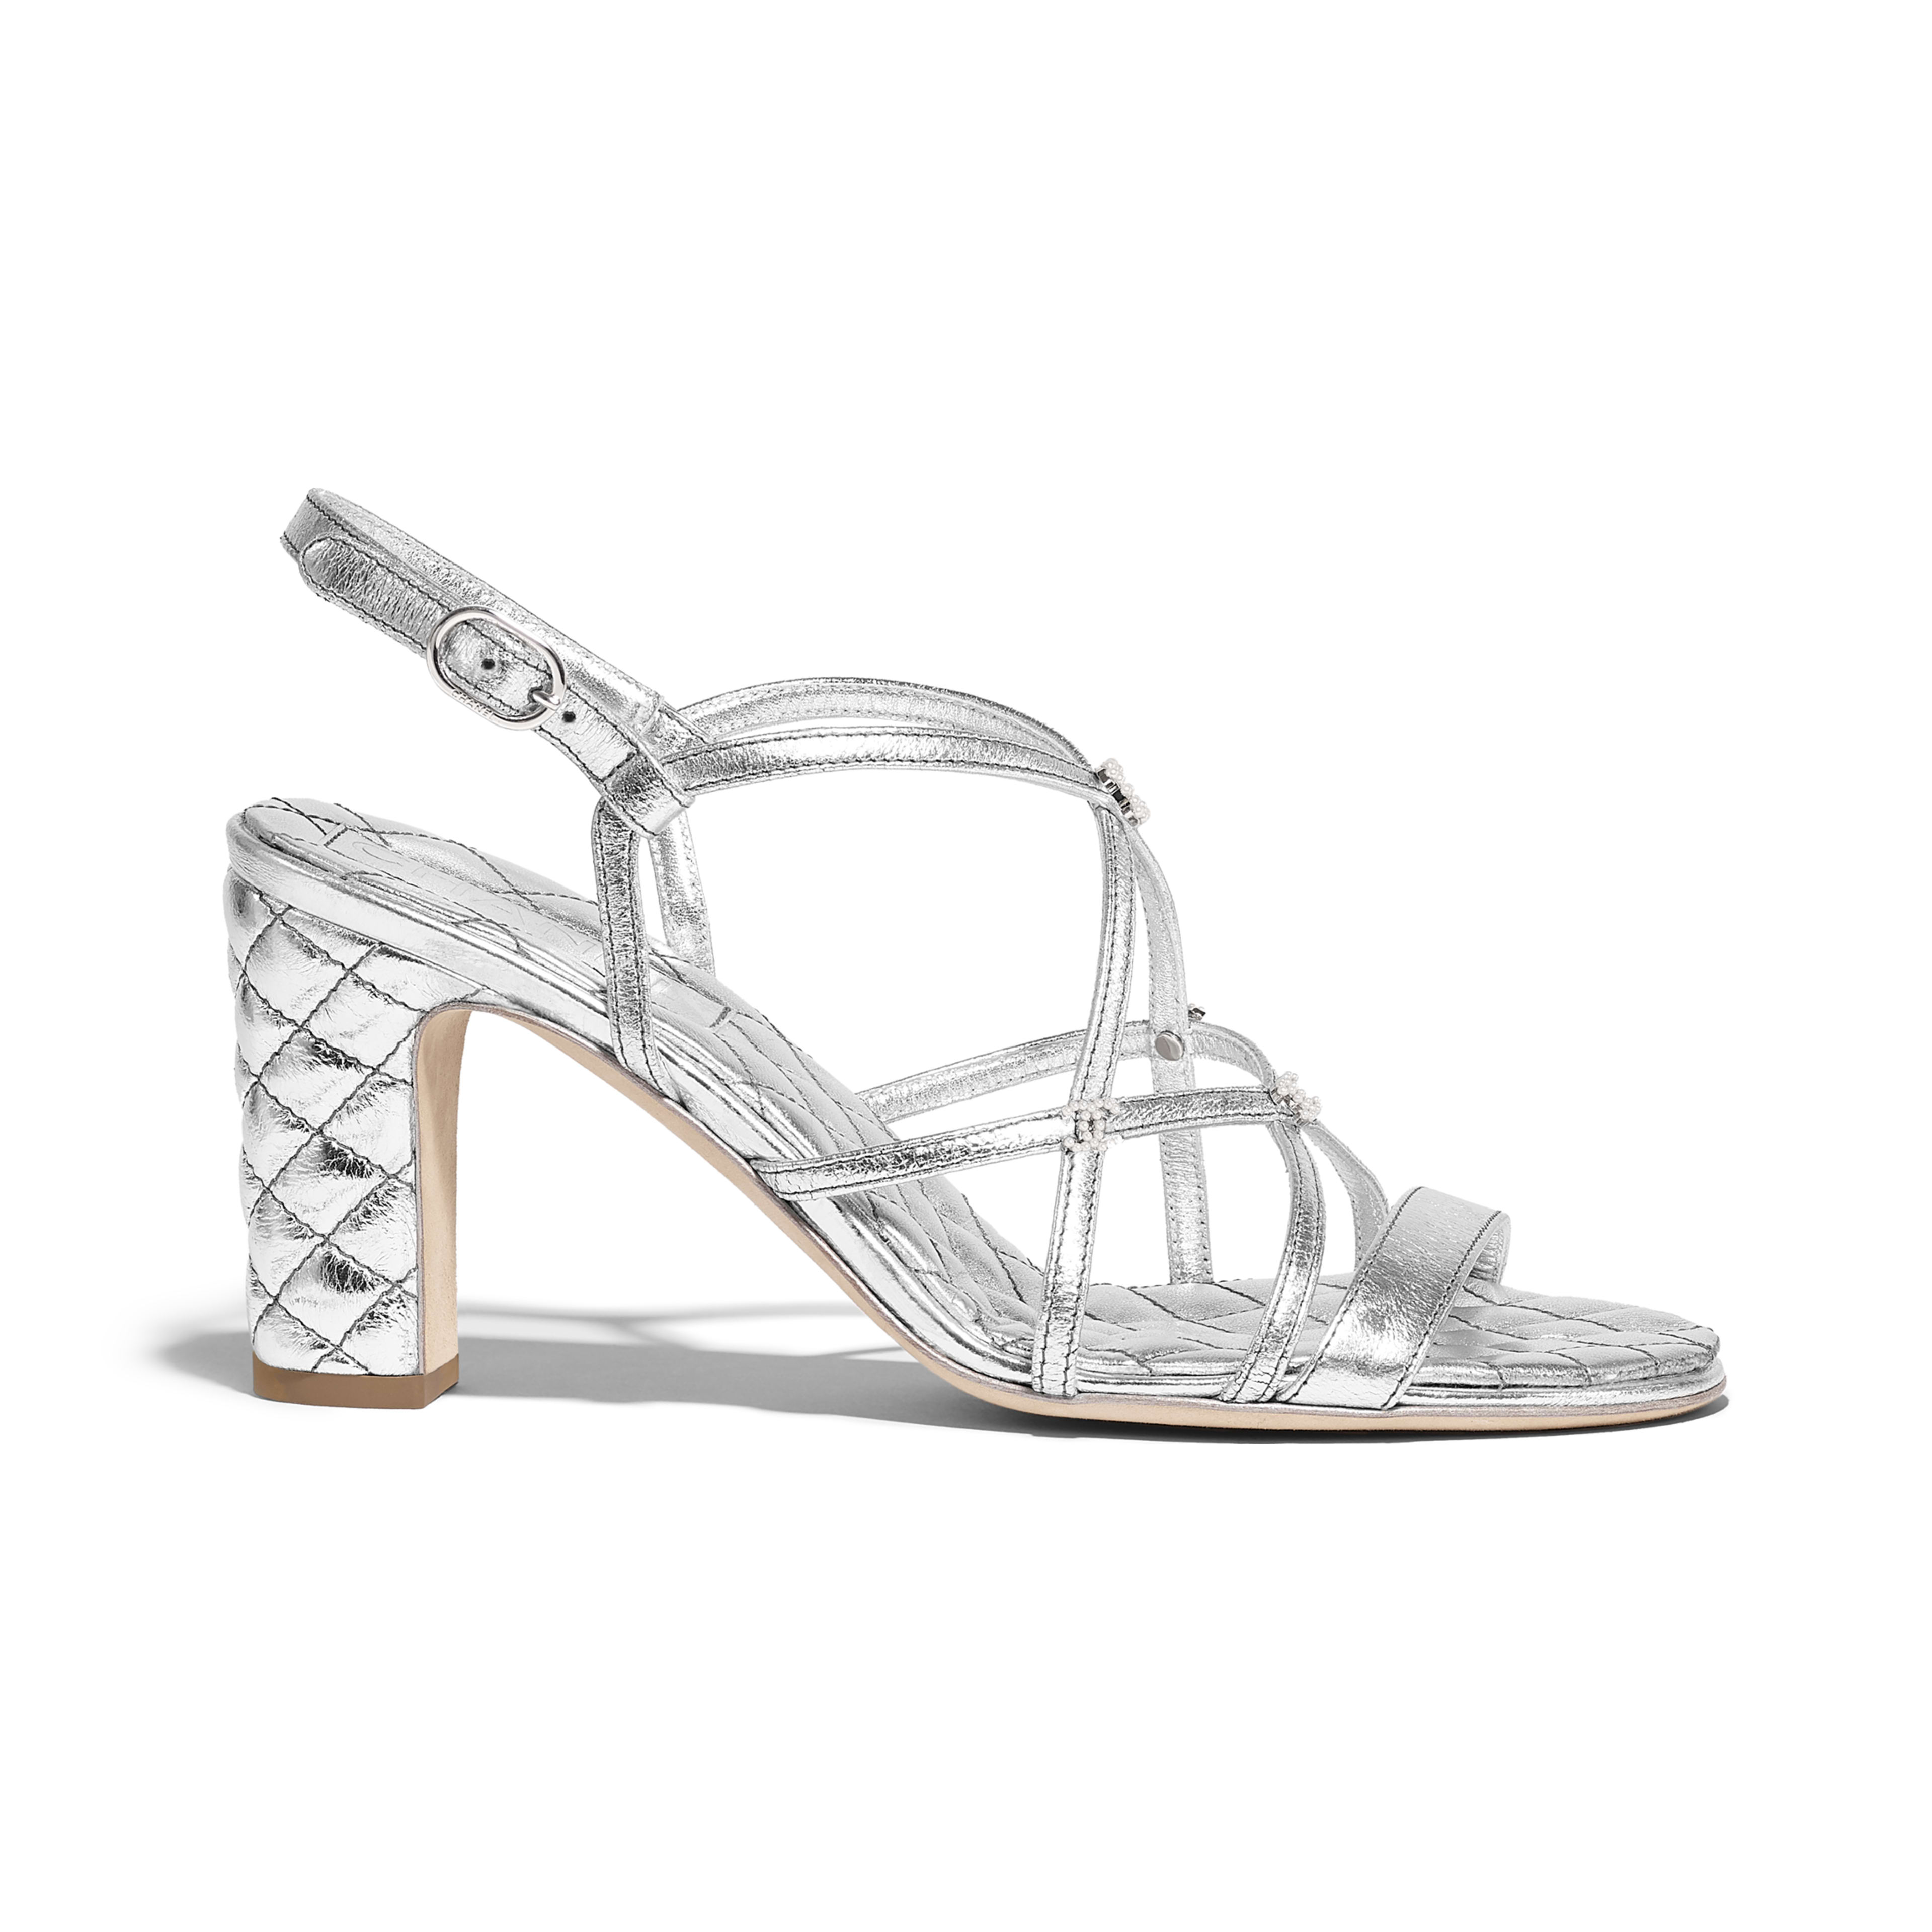 0aa54946fb62 Sandals - Silver - Laminated Lambskin - Default view - see full sized  version ...